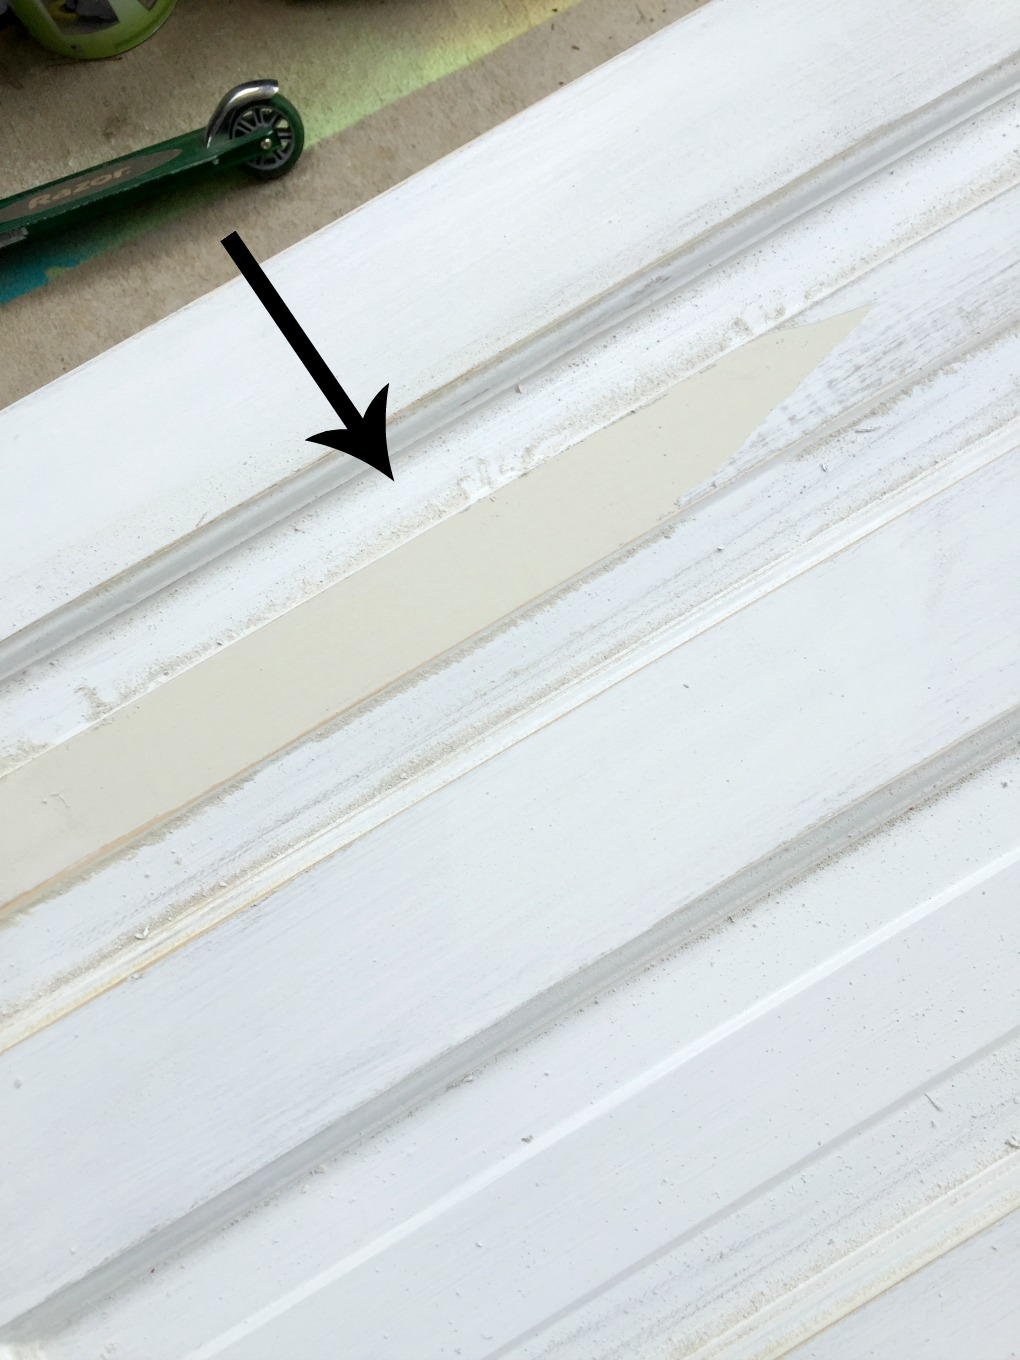 Paint started peeling off in sheets when I sanded the doors - thediybungalow.com